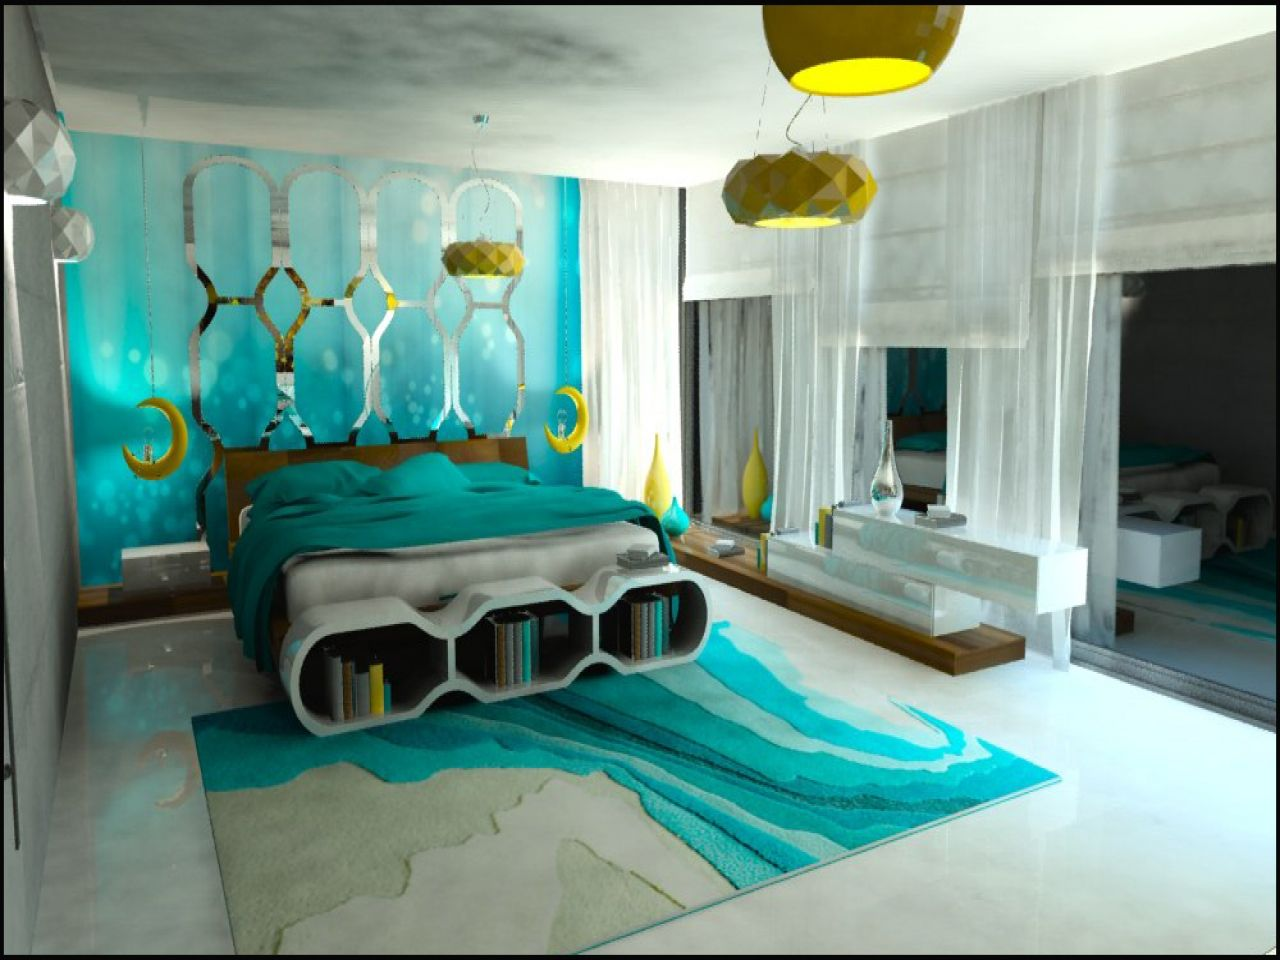 Turquoise bedroom 17 ideas for inspiration tags bedroom turquoise and beige turquoise bedroom accessories turquoise bedroom decor turquoise bedroom